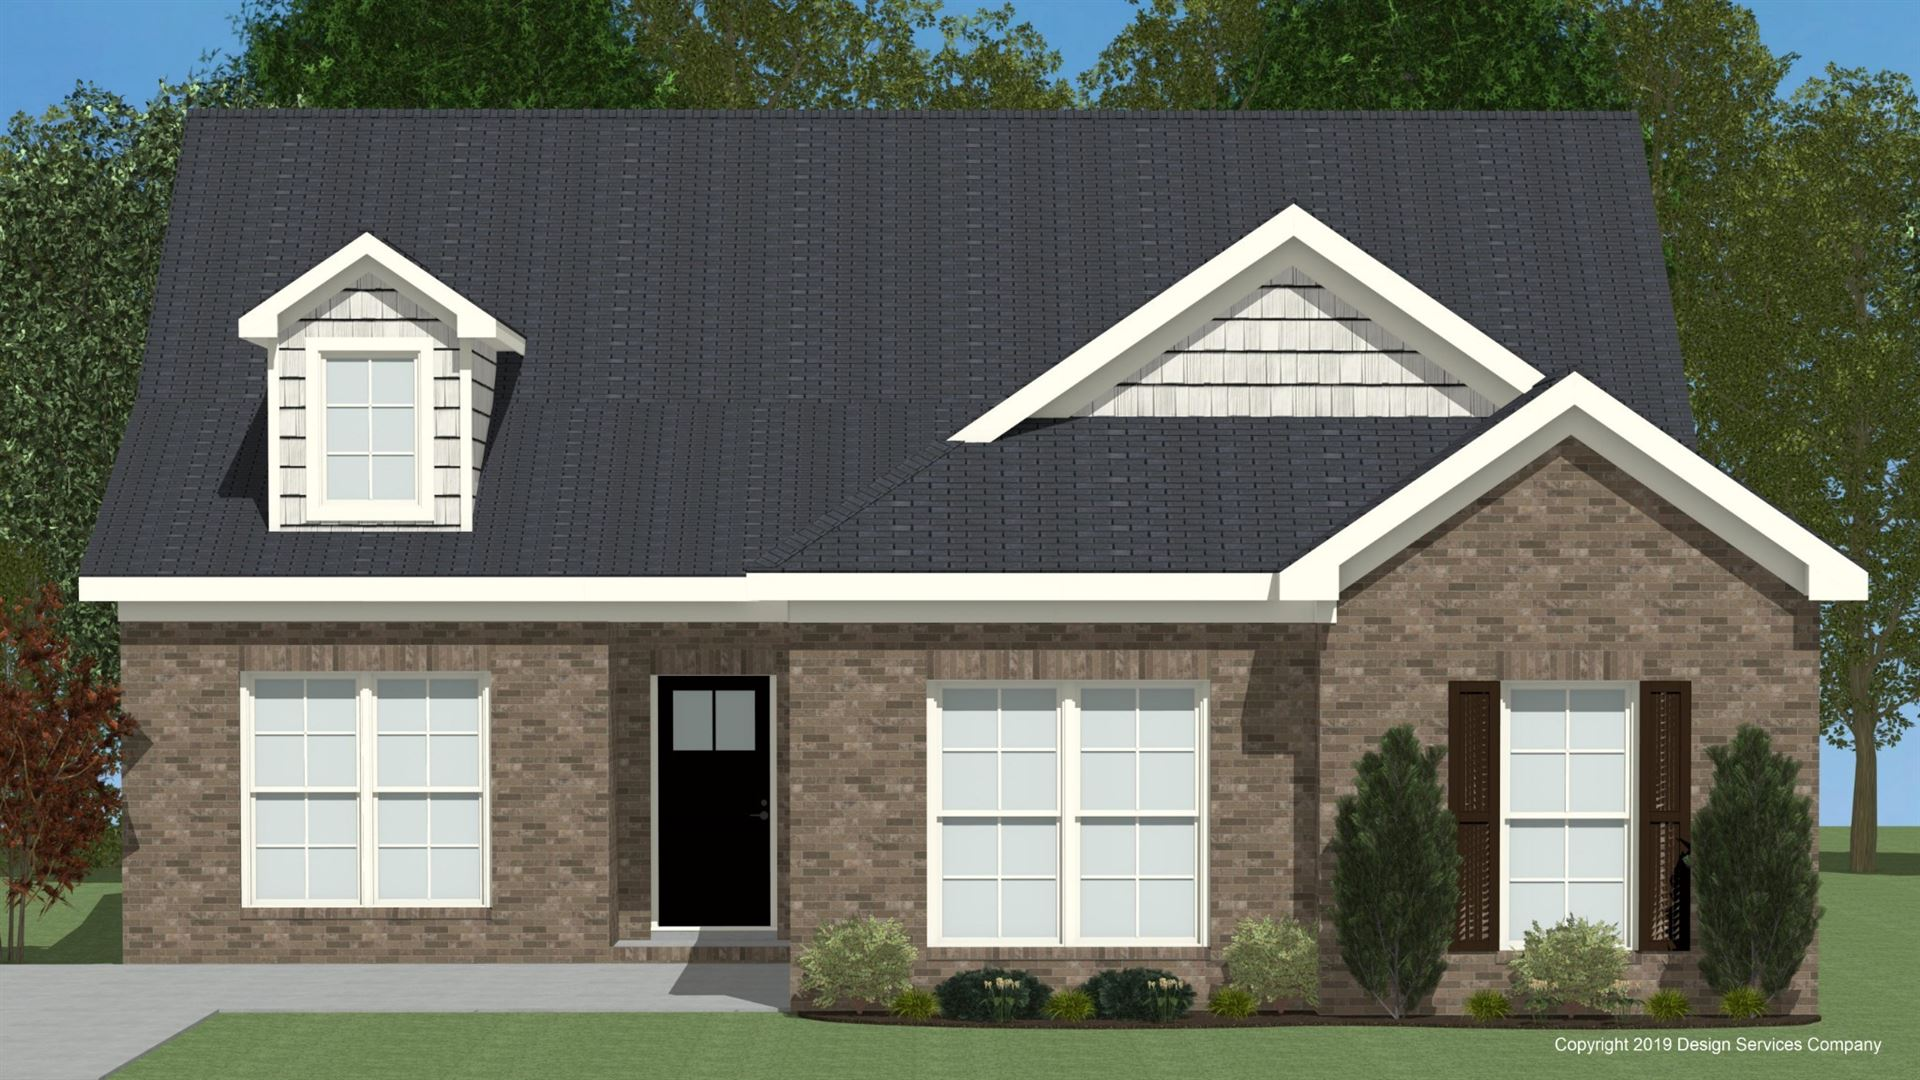 Photo of 6424 Armstrong Dr, Hermitage, TN 37076 (MLS # 2251141)